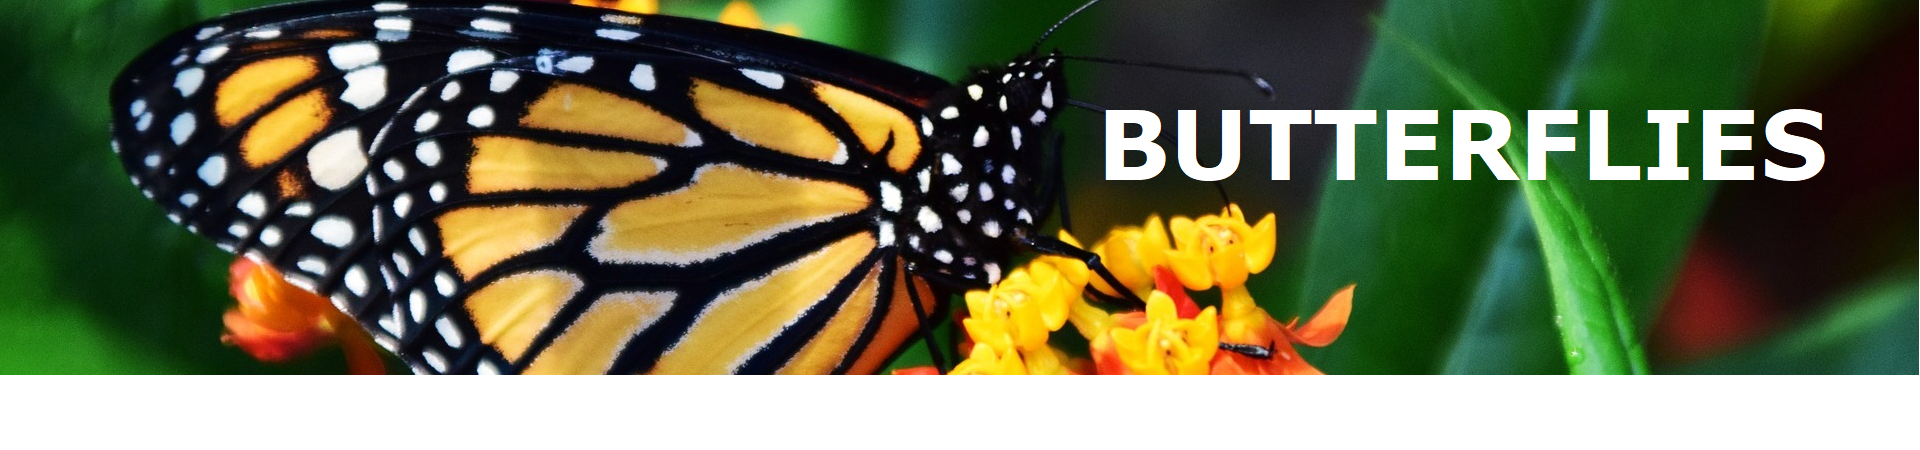 Butterfly Home Decor and Gifts